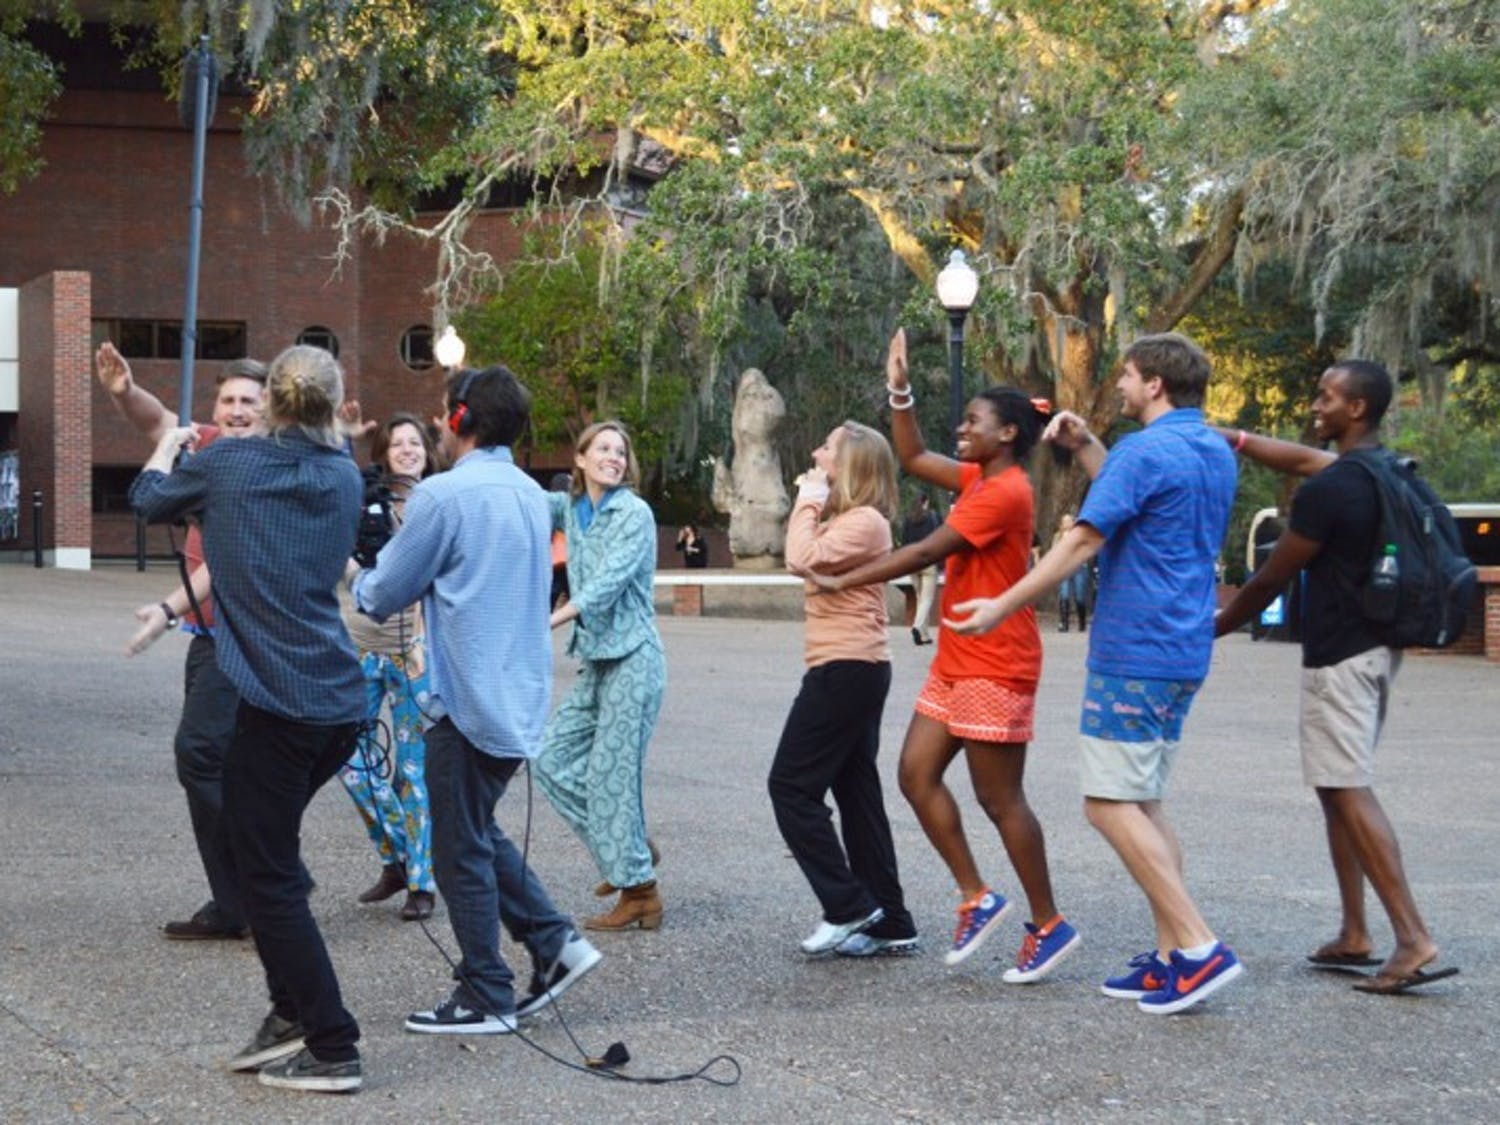 Students reenact the old UF tradition of the impromptu pajama parade, which freshmen would participate in, for a Reese's video. Reese's is visiting campuses across the country to make videos about college traditions.